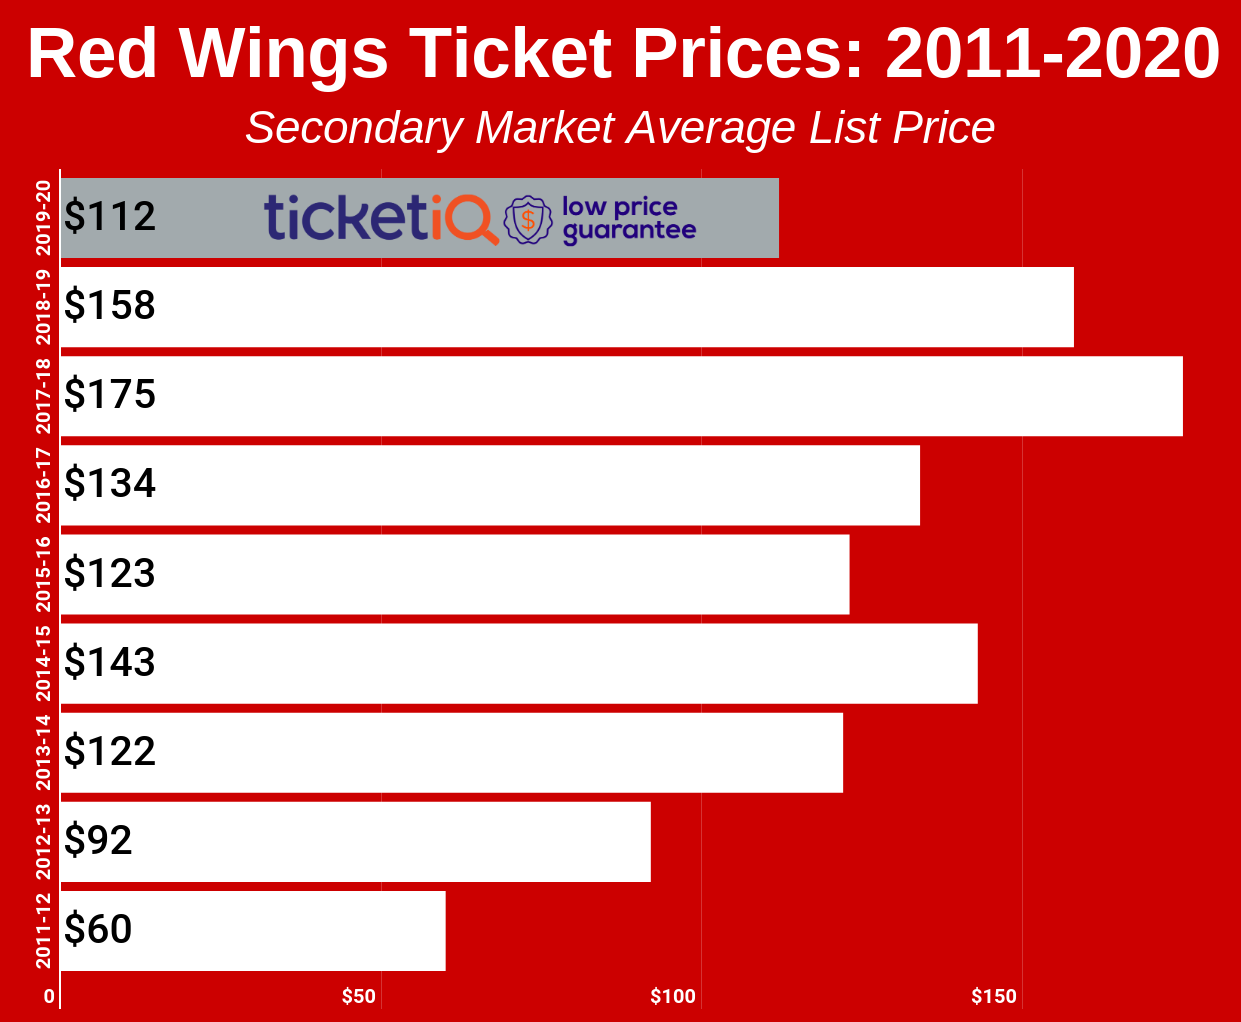 Red Wings Ticket Prices